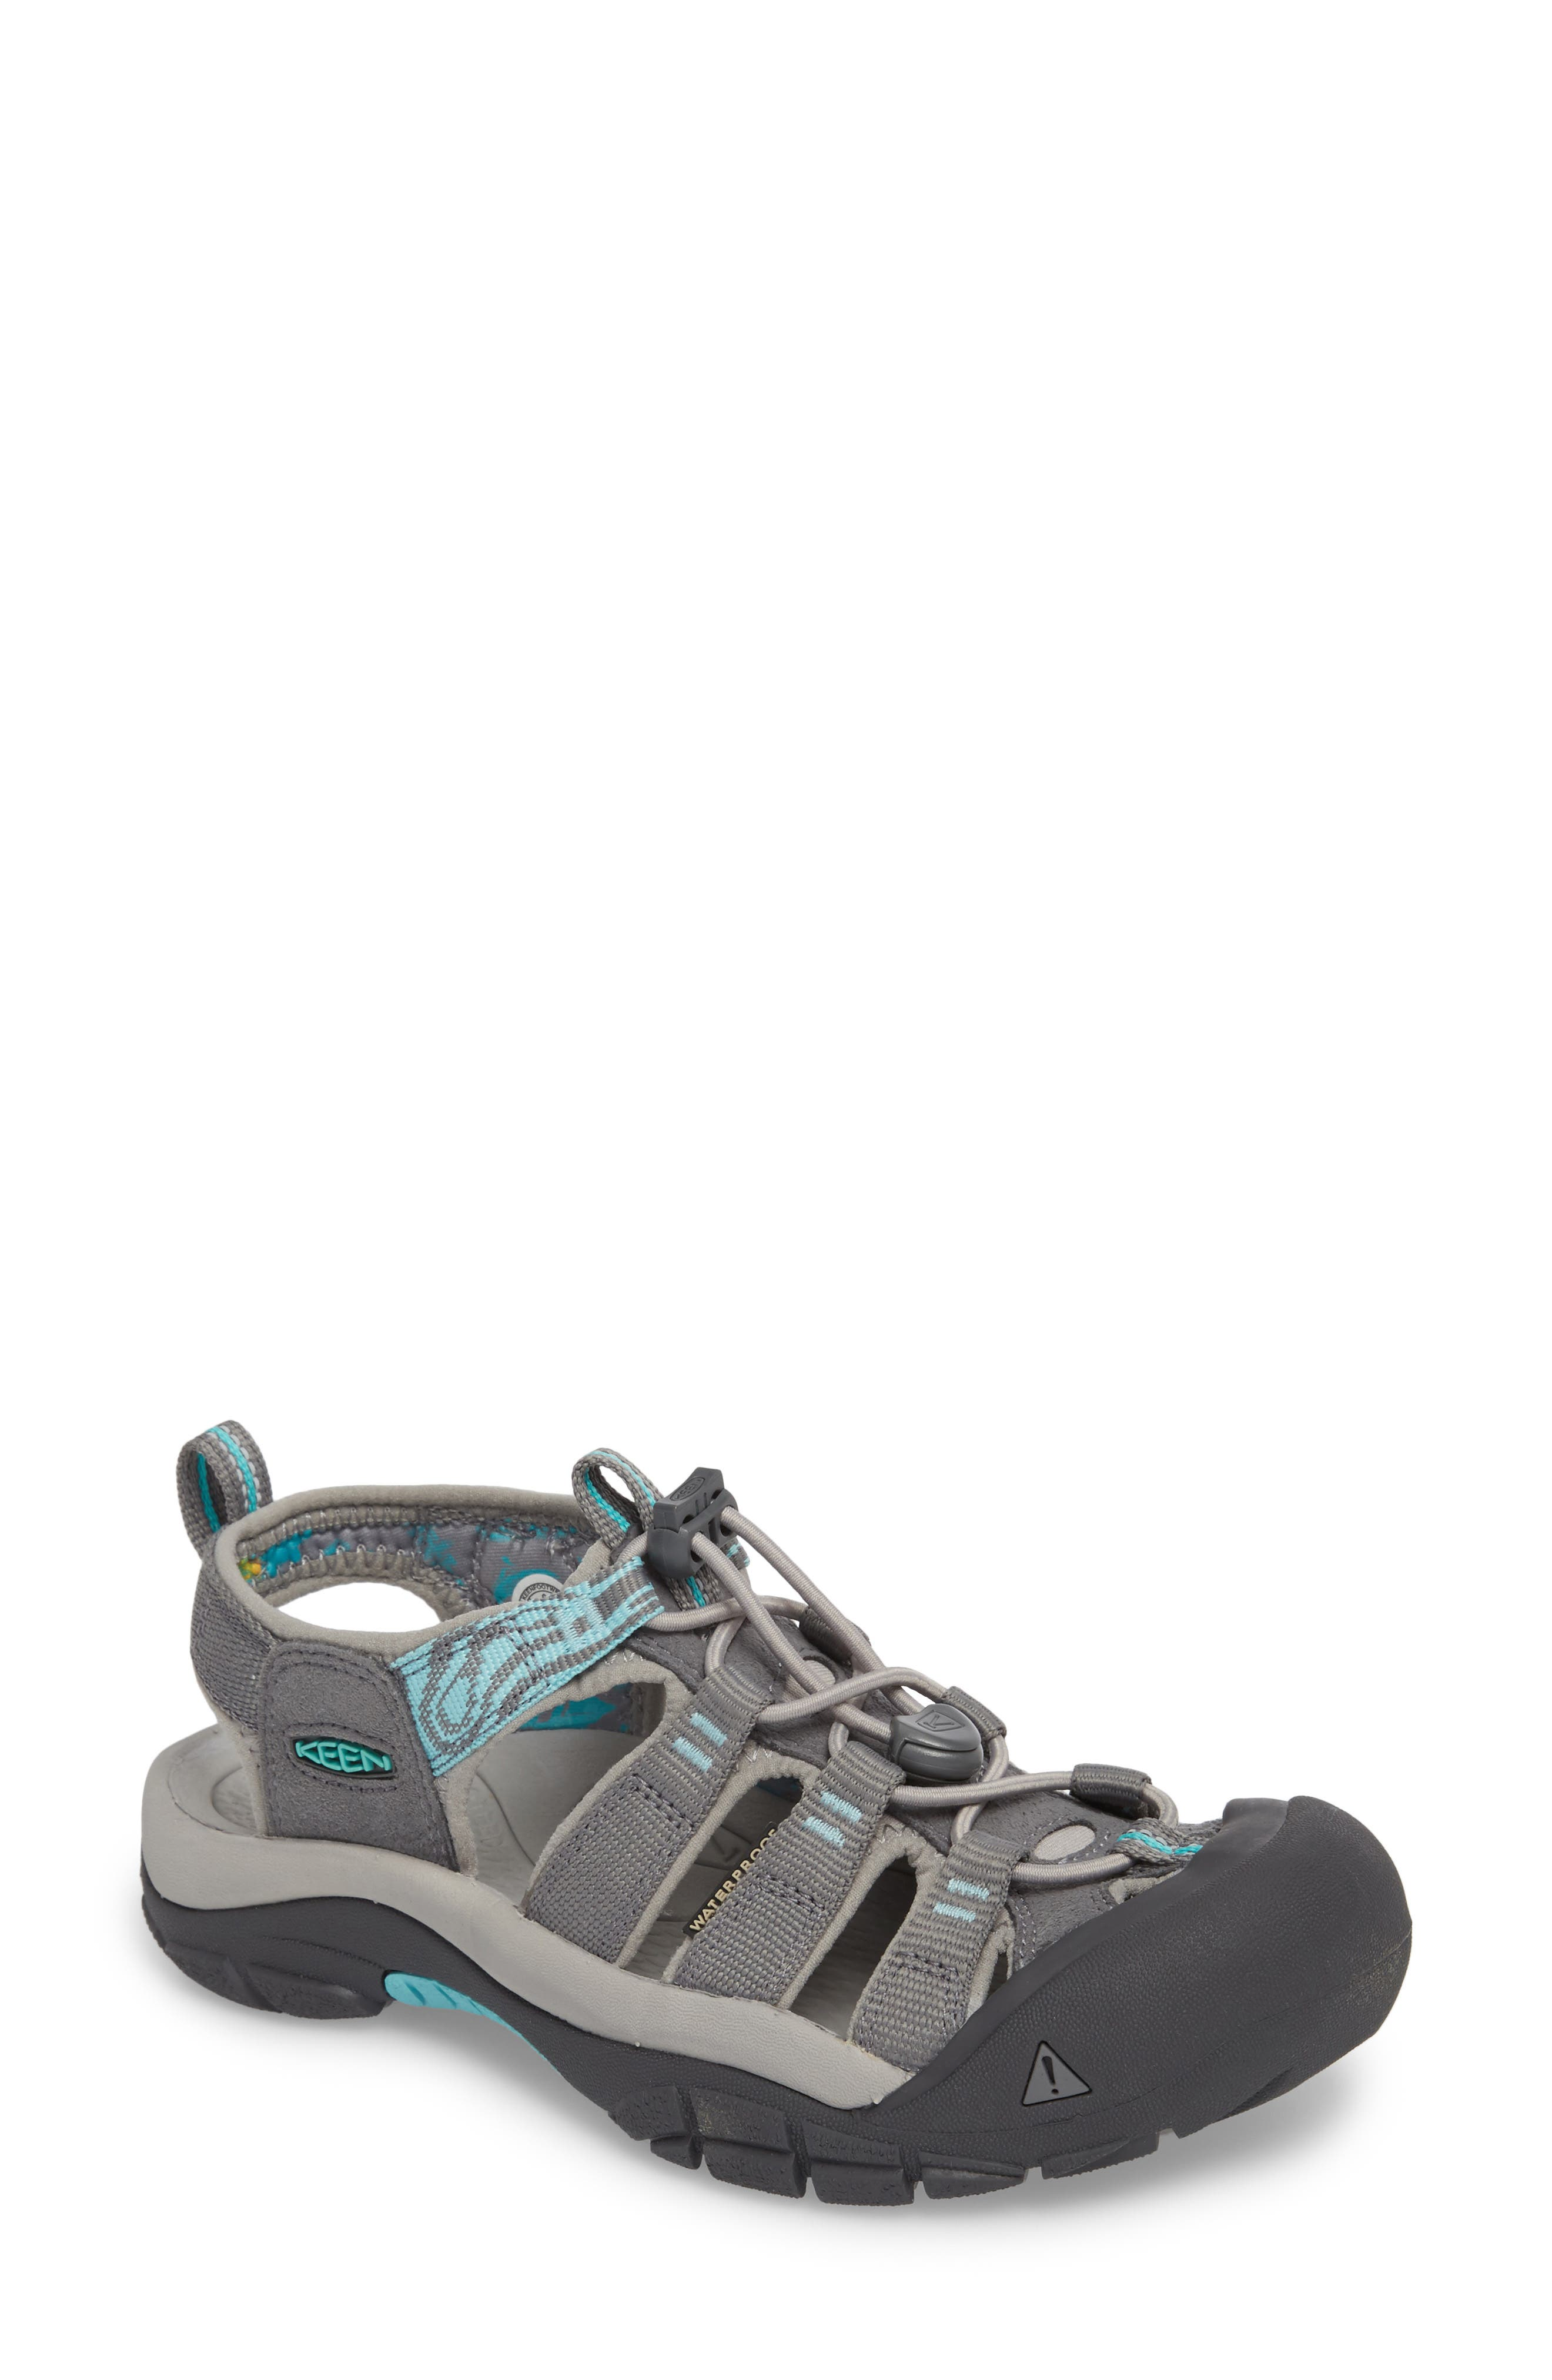 Newport Hydro Sandal,                         Main,                         color, Steel Grey/ Blue Turquoise